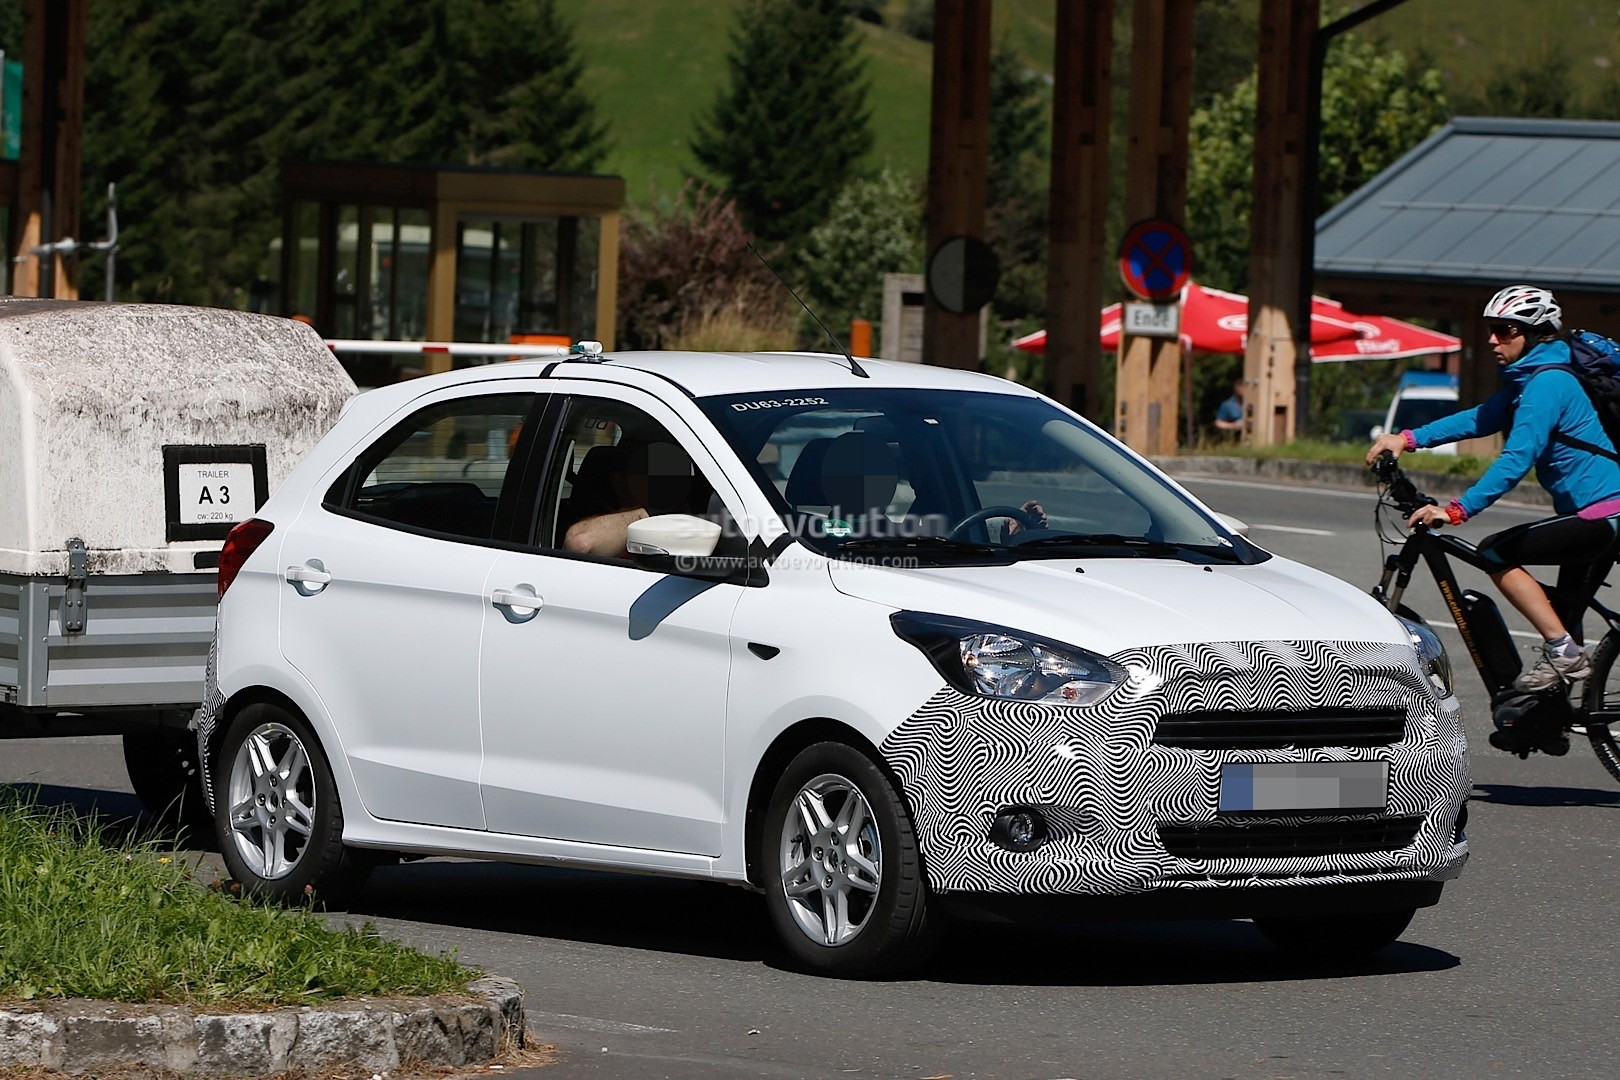 2016 Ford Ka Spotted Testing in the Alps, Ford is Preparing the Hatch for Europe - autoevolution